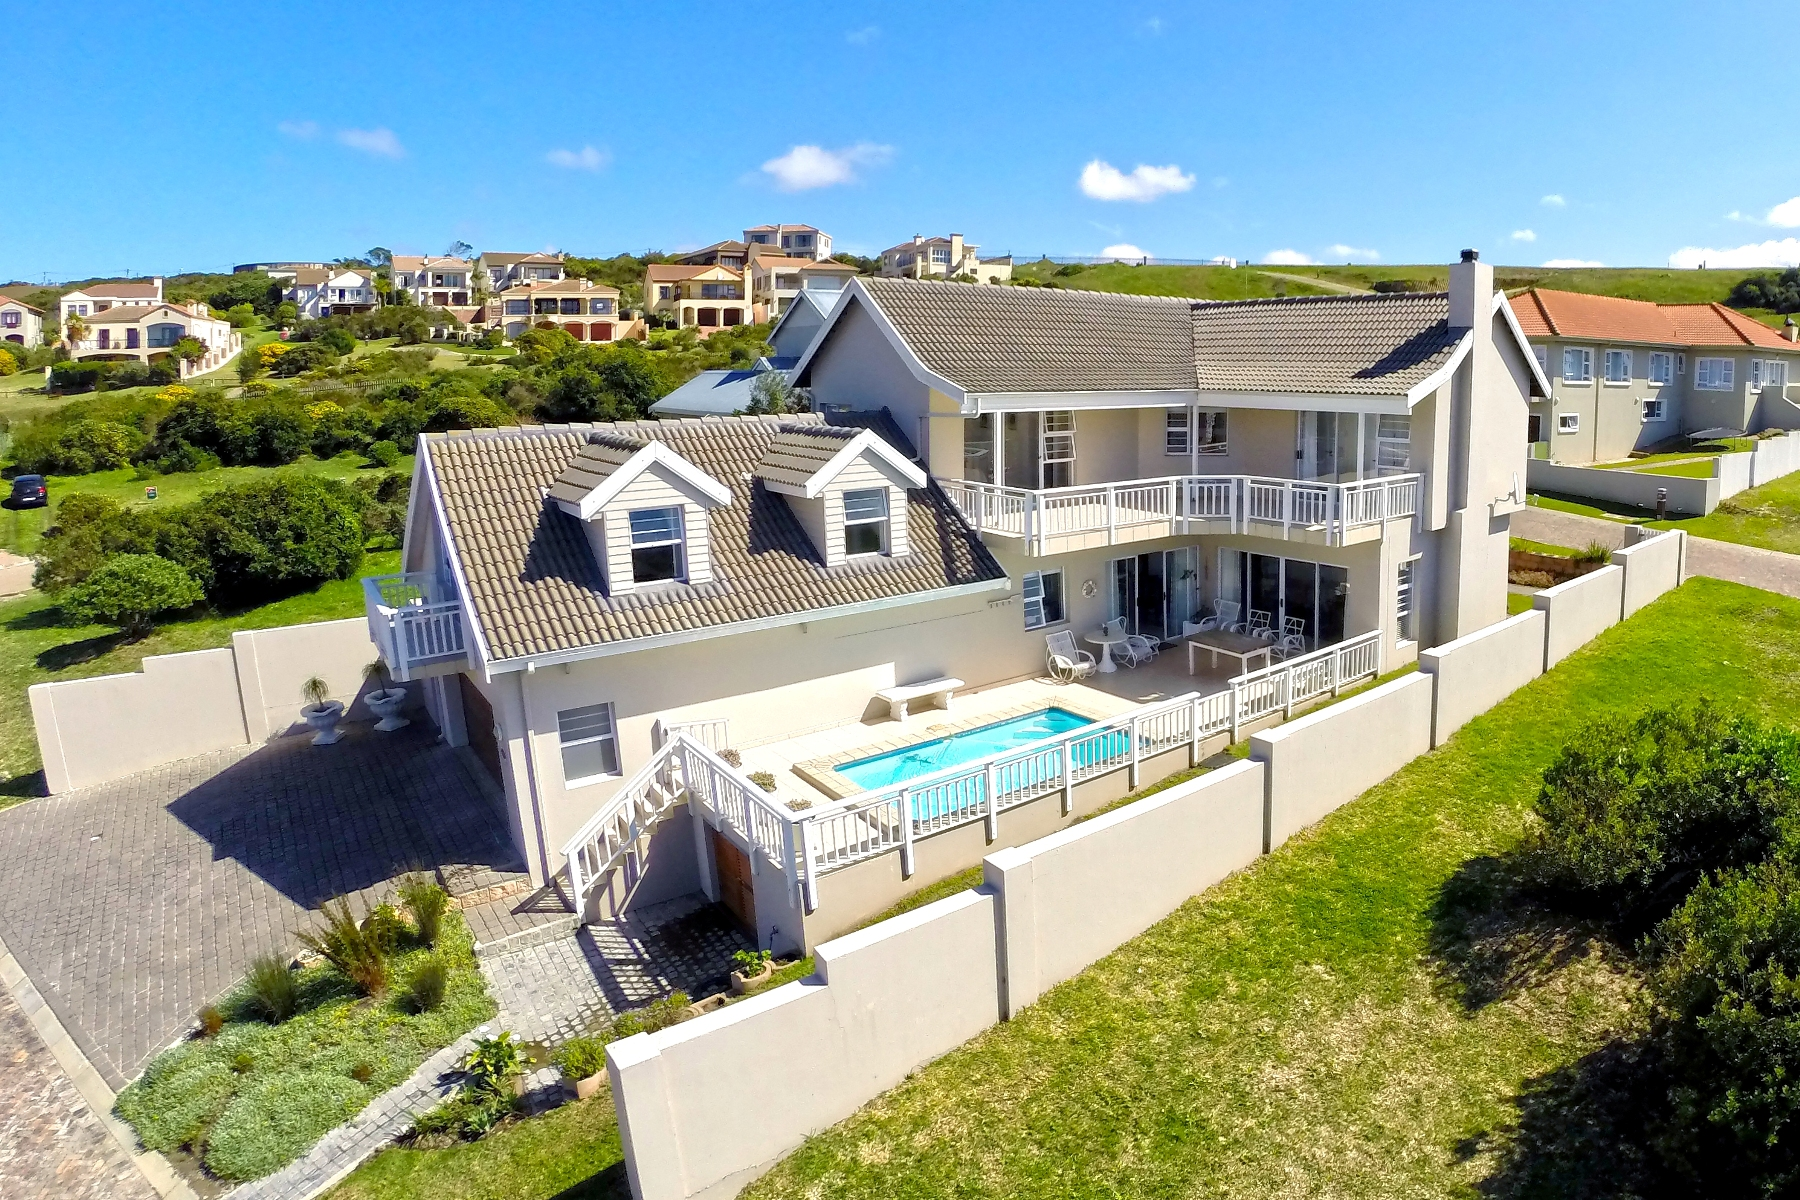 Single Family Home for Sale at Practical Gated Estate Home Plettenberg Bay, Western Cape, 6600 South Africa